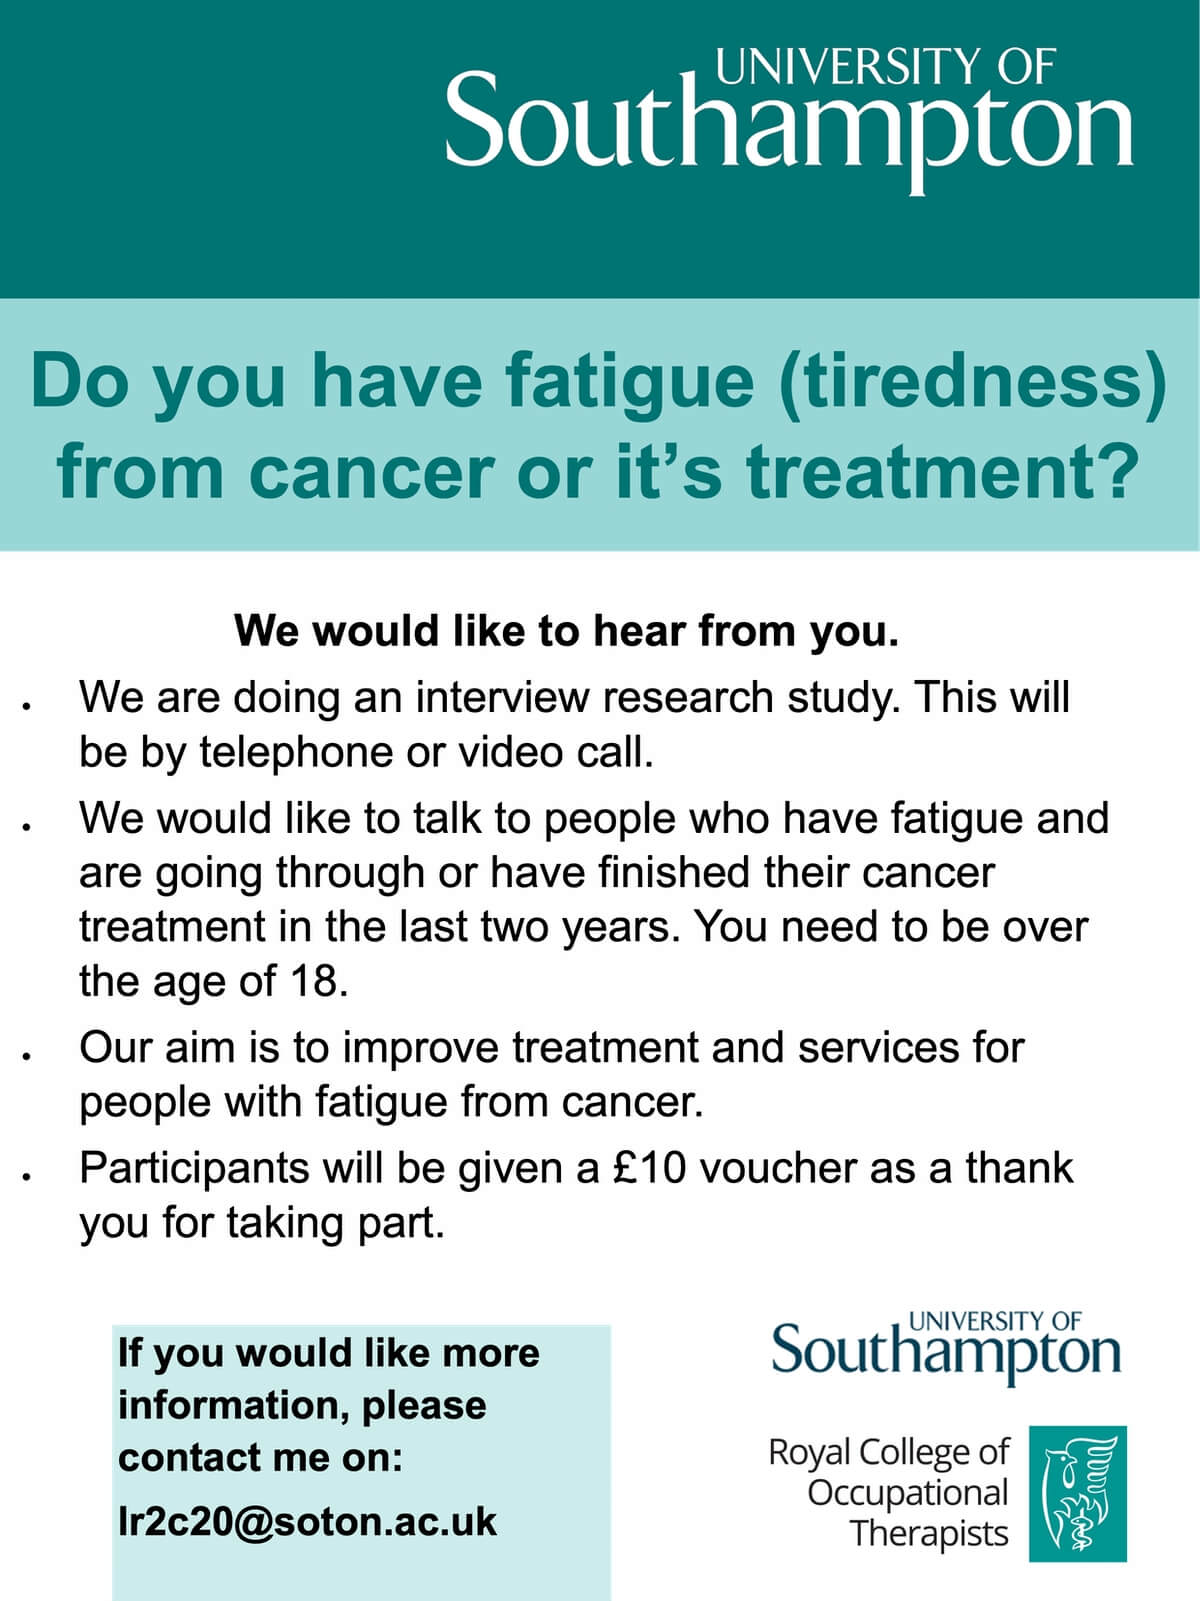 Cancer-Related Fatigue Research Study Flyer